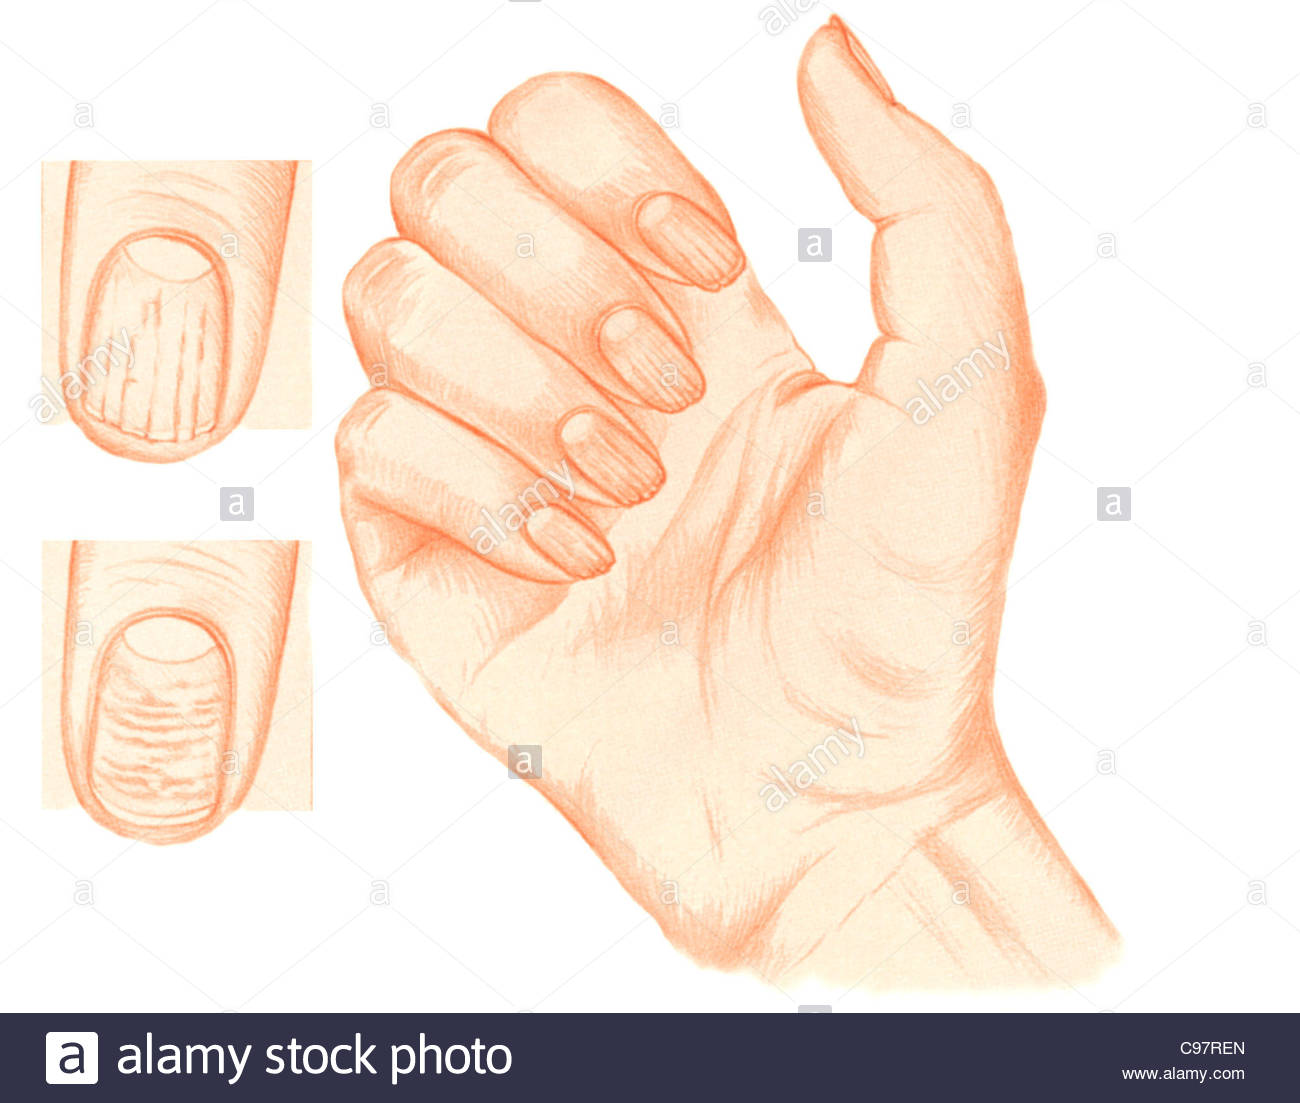 Damage To Fingernail Stock Photos Damage To Fingernail Stock